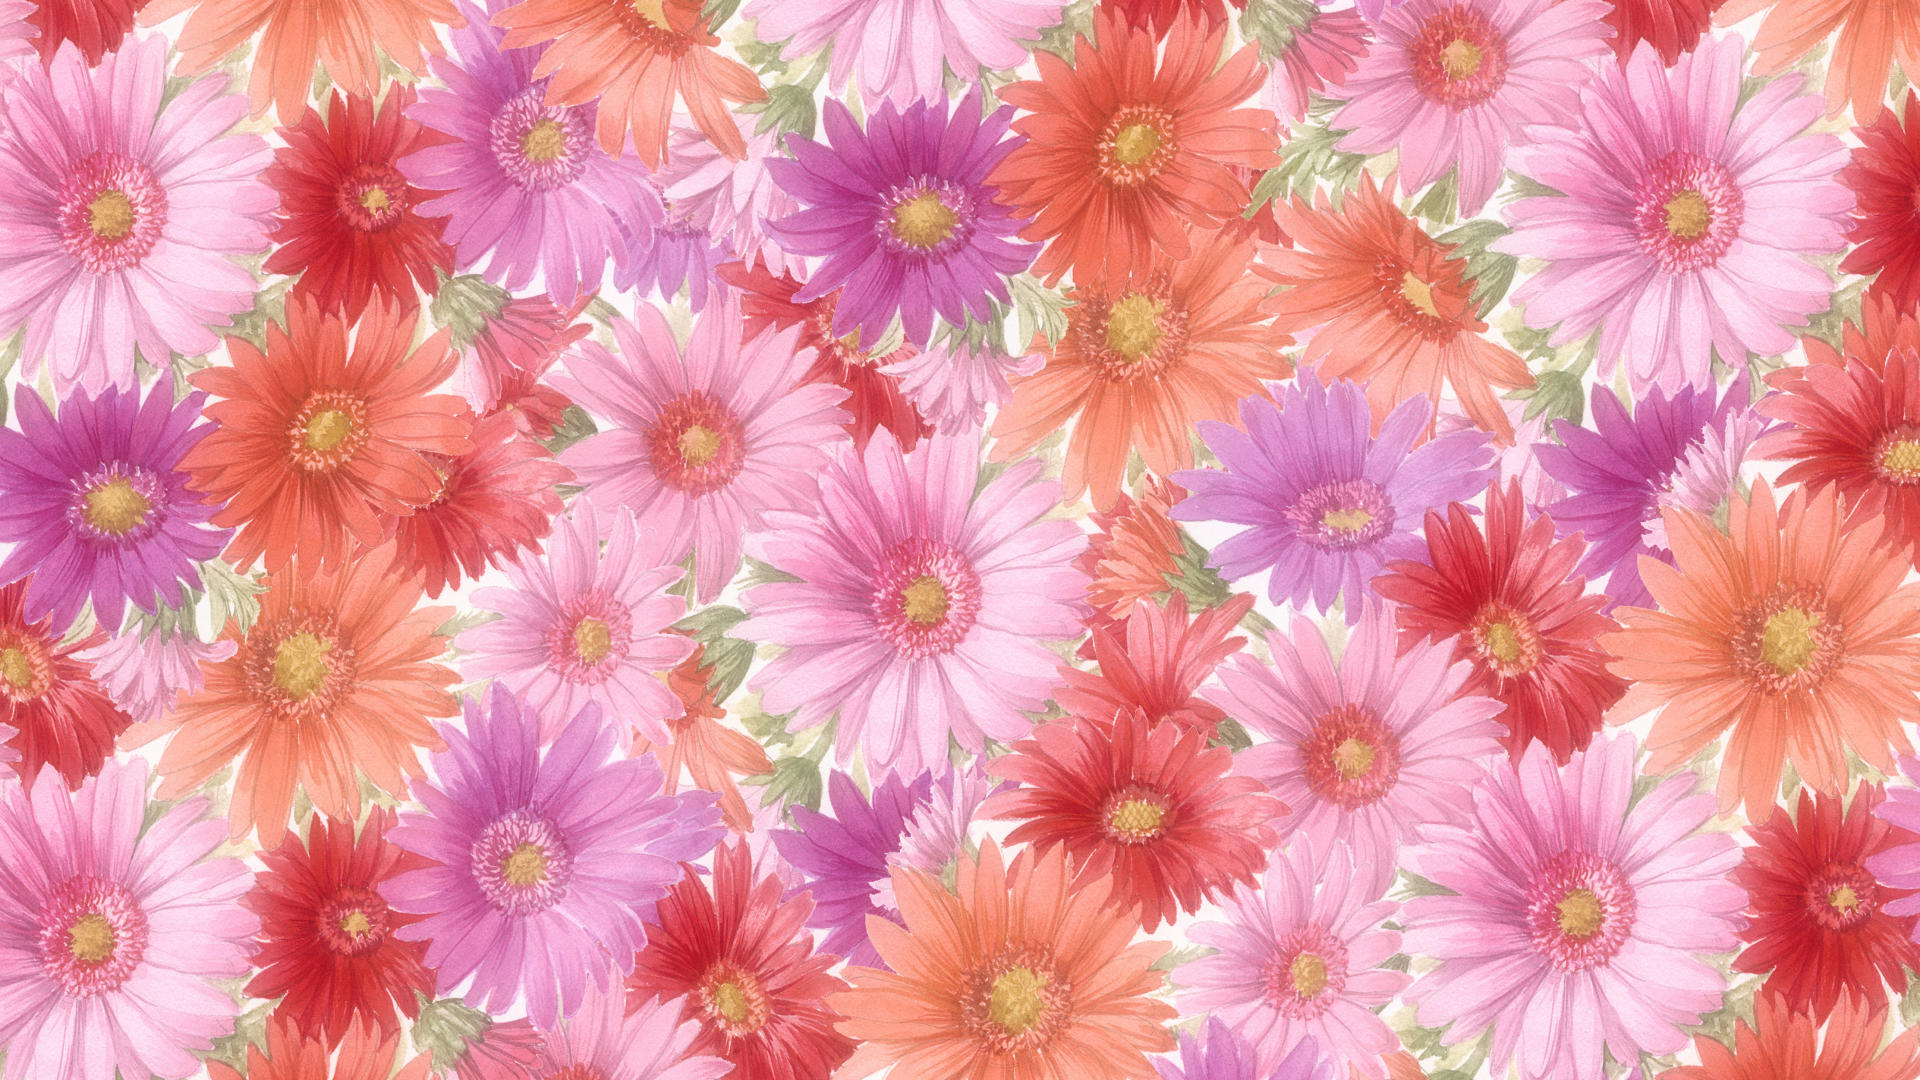 Flowers Background Hd Pink